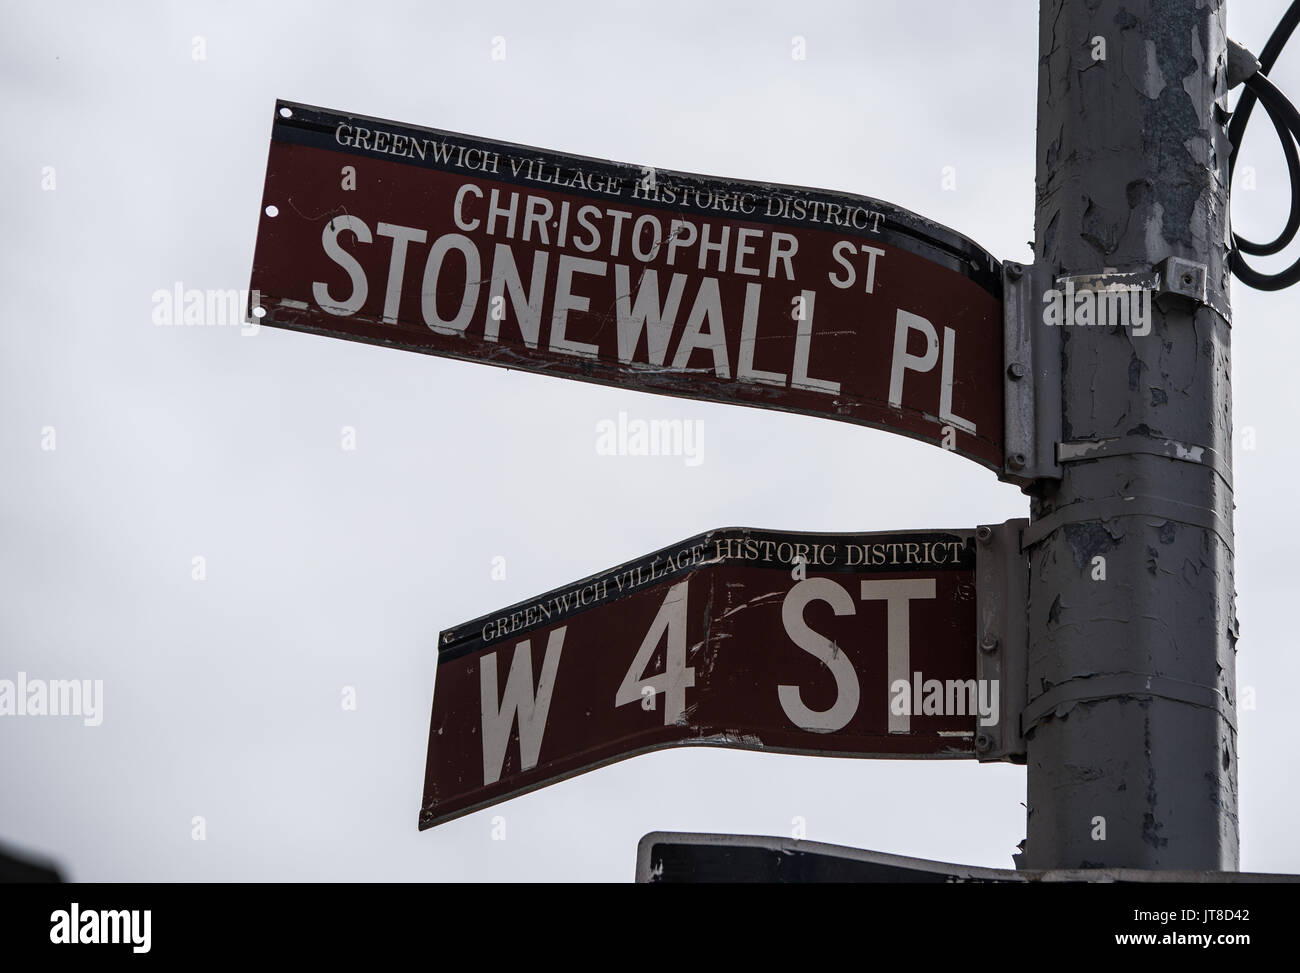 New York City, New York, USA. 6th Aug, 2017. The facade of the historic Stonewall Inn, where riots took place in - Stock Image